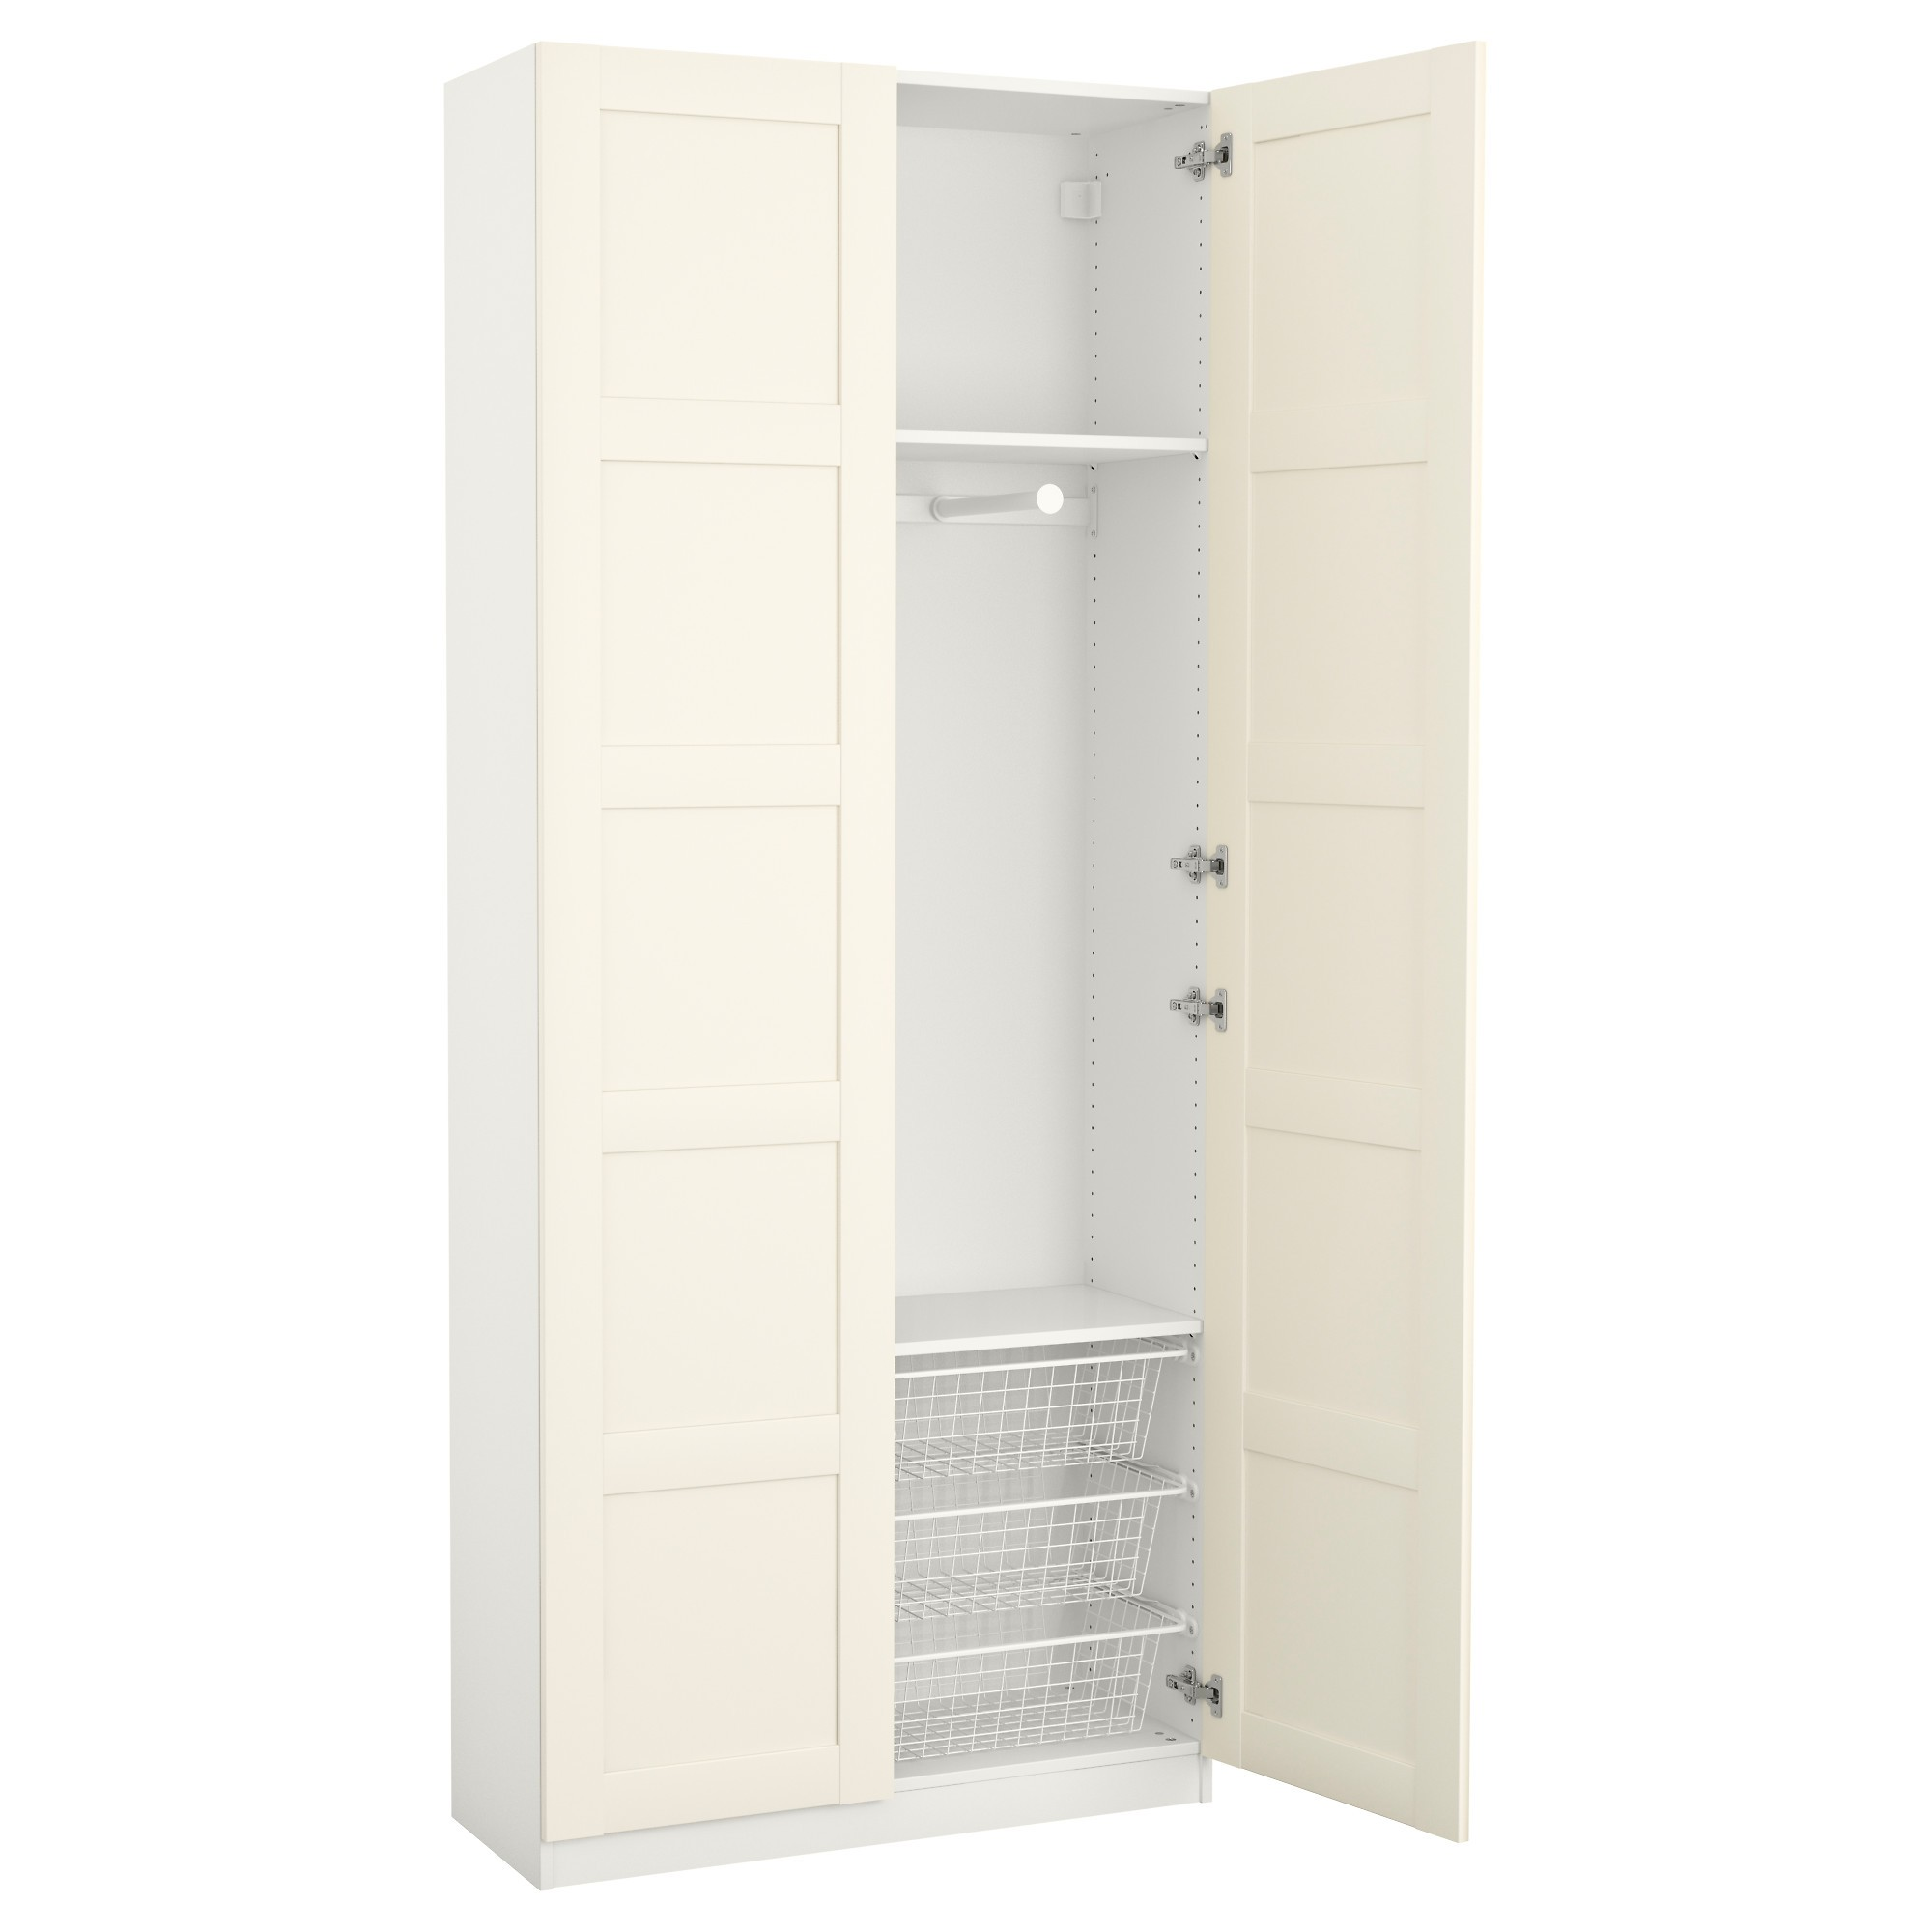 armoire 2 portes blanche ikea armoire id es de d coration de maison jgnxv5edg1. Black Bedroom Furniture Sets. Home Design Ideas